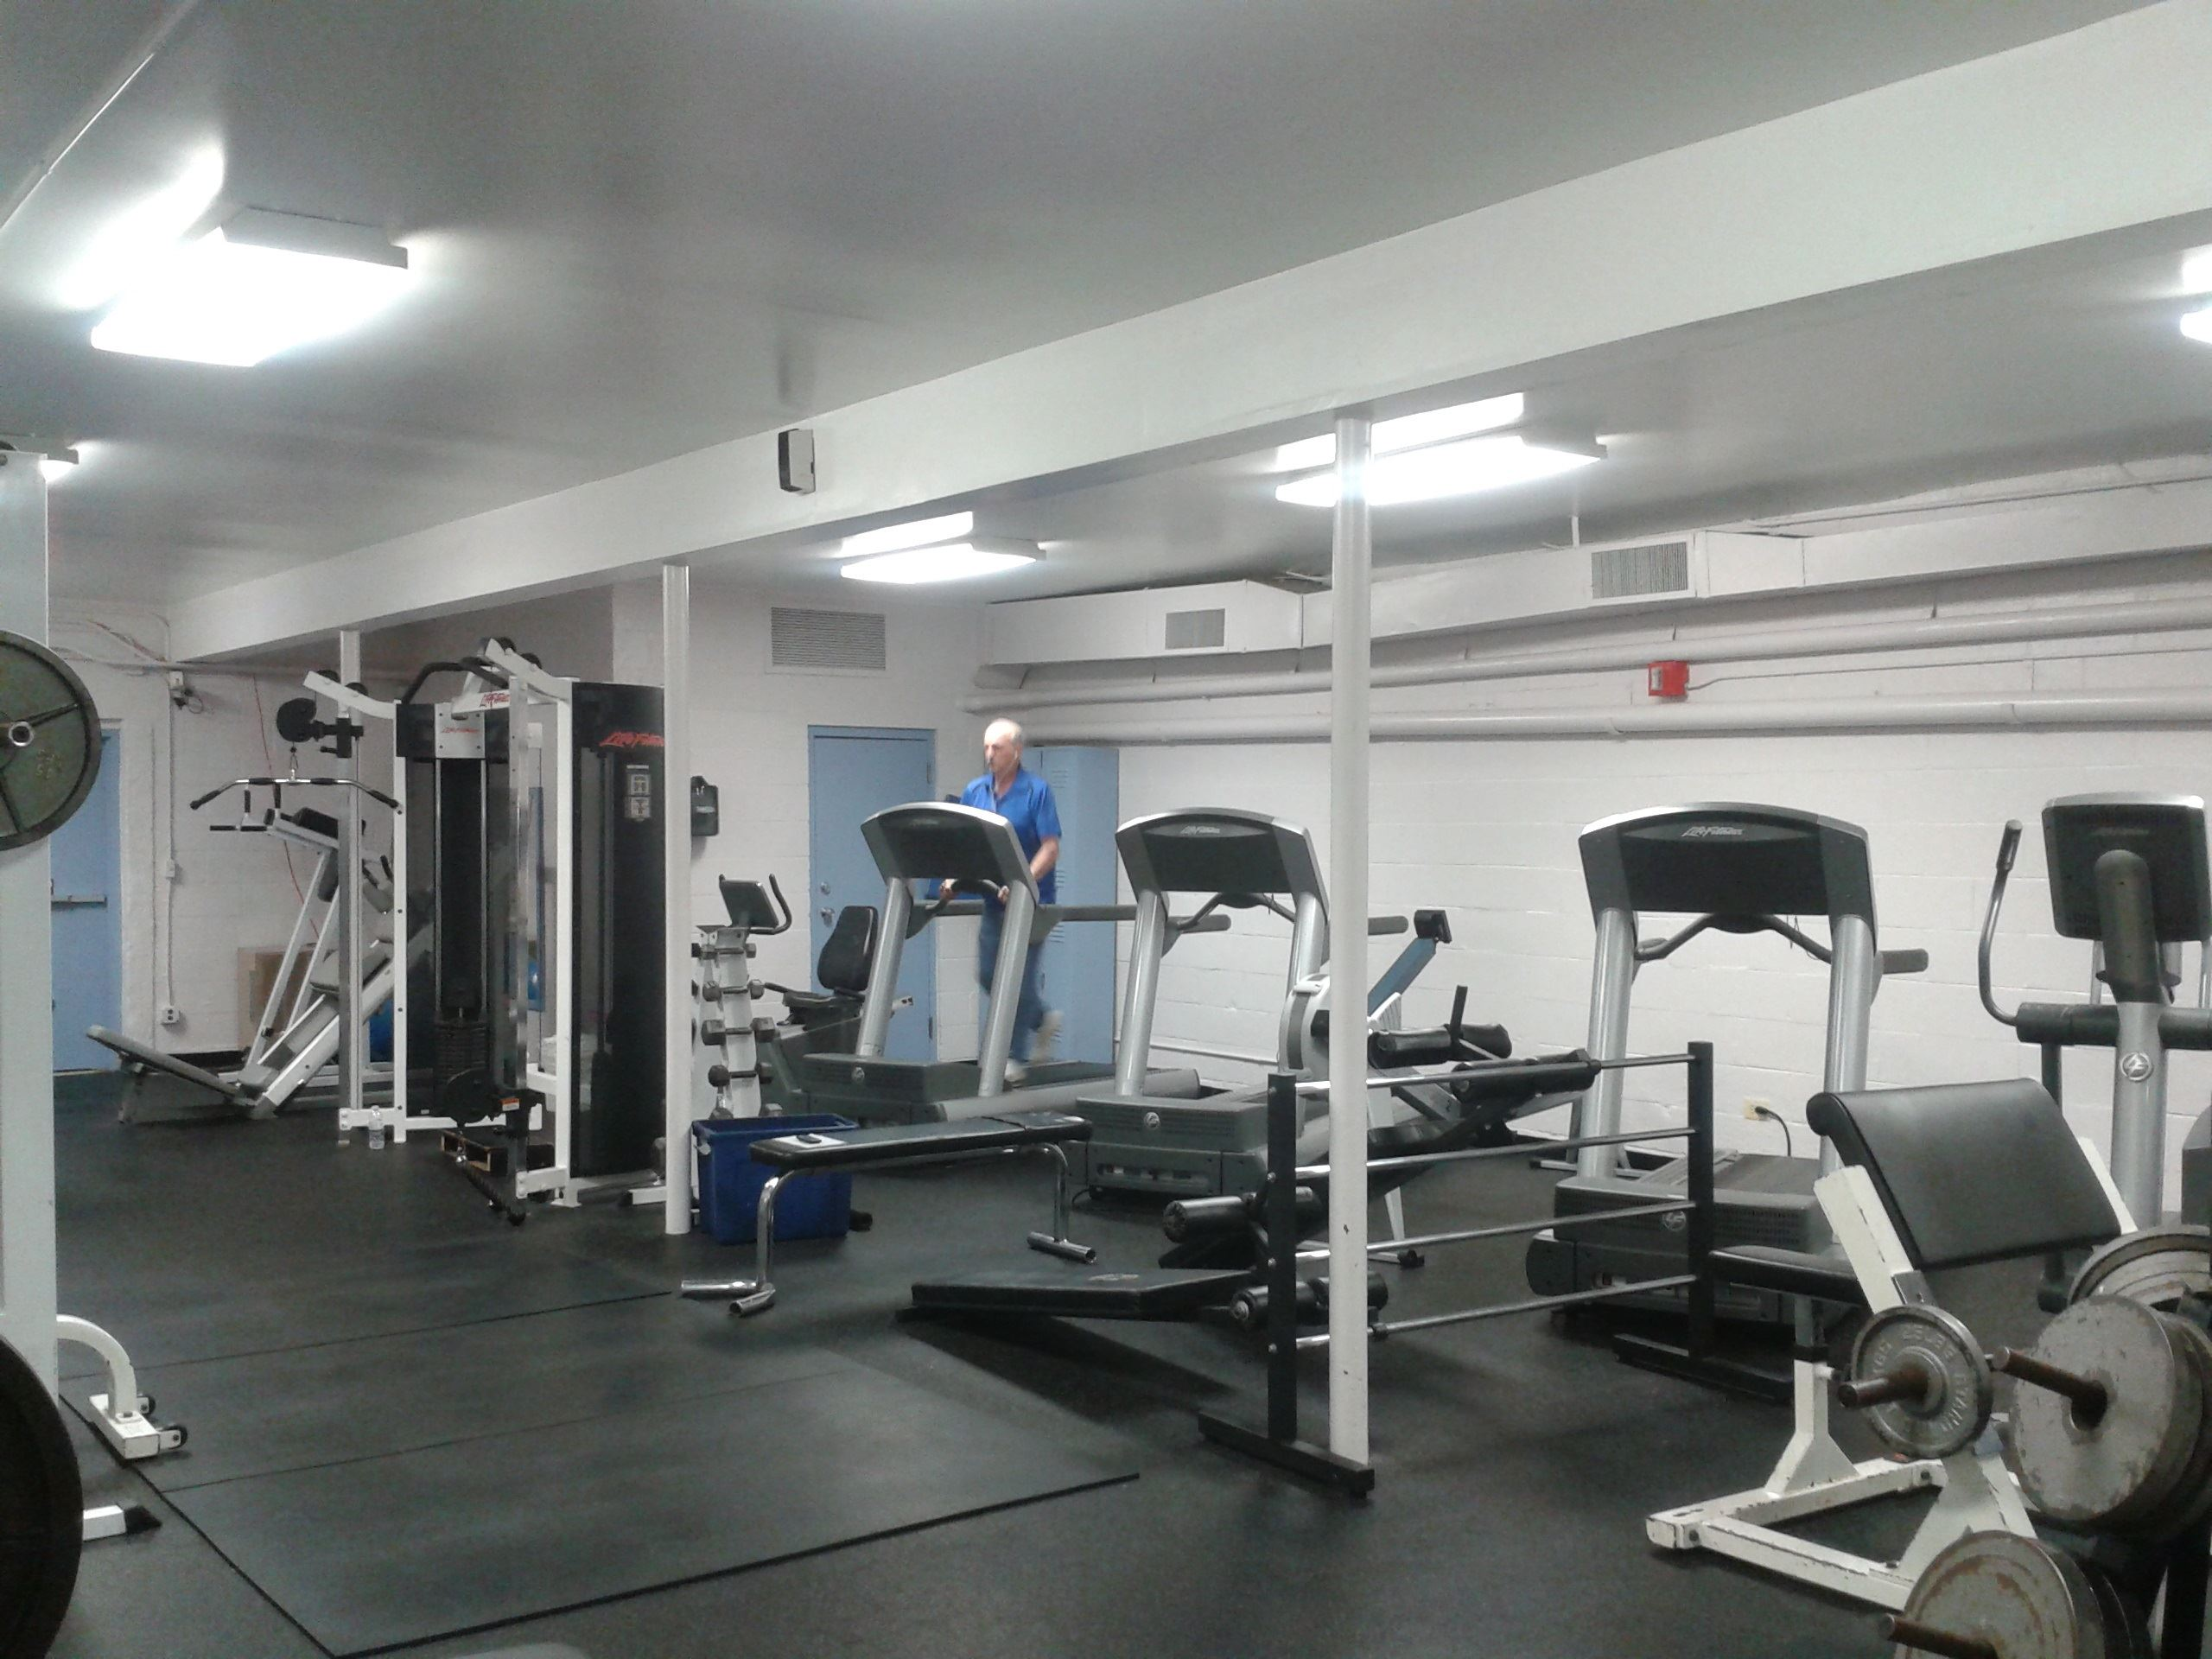 Lincoln Park Community Center Fitness Room